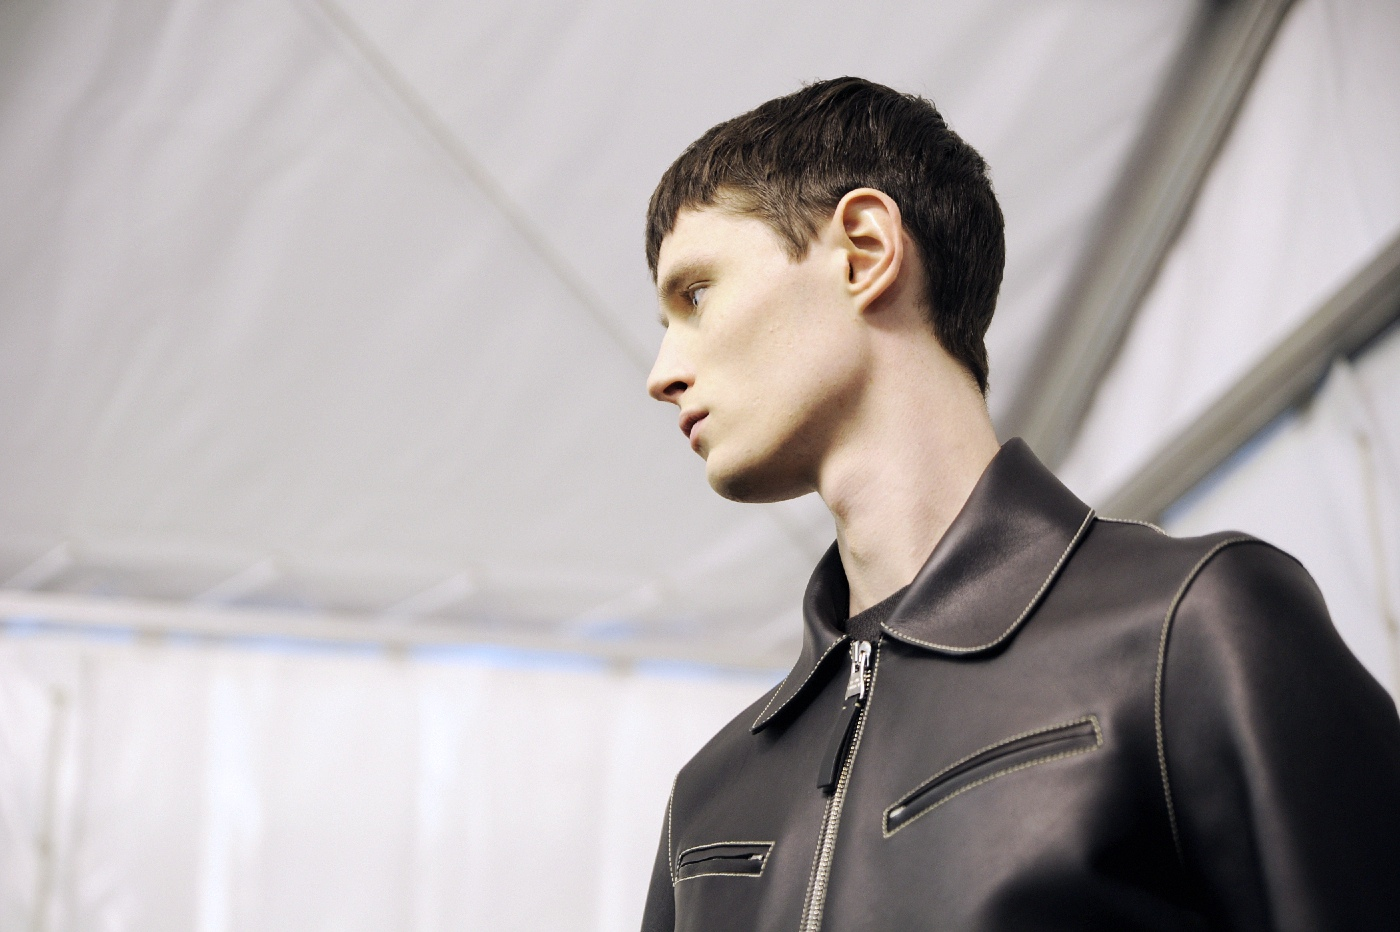 Backstage at the Louis Vuitton Menswear Fall Winter 2015 Show 16